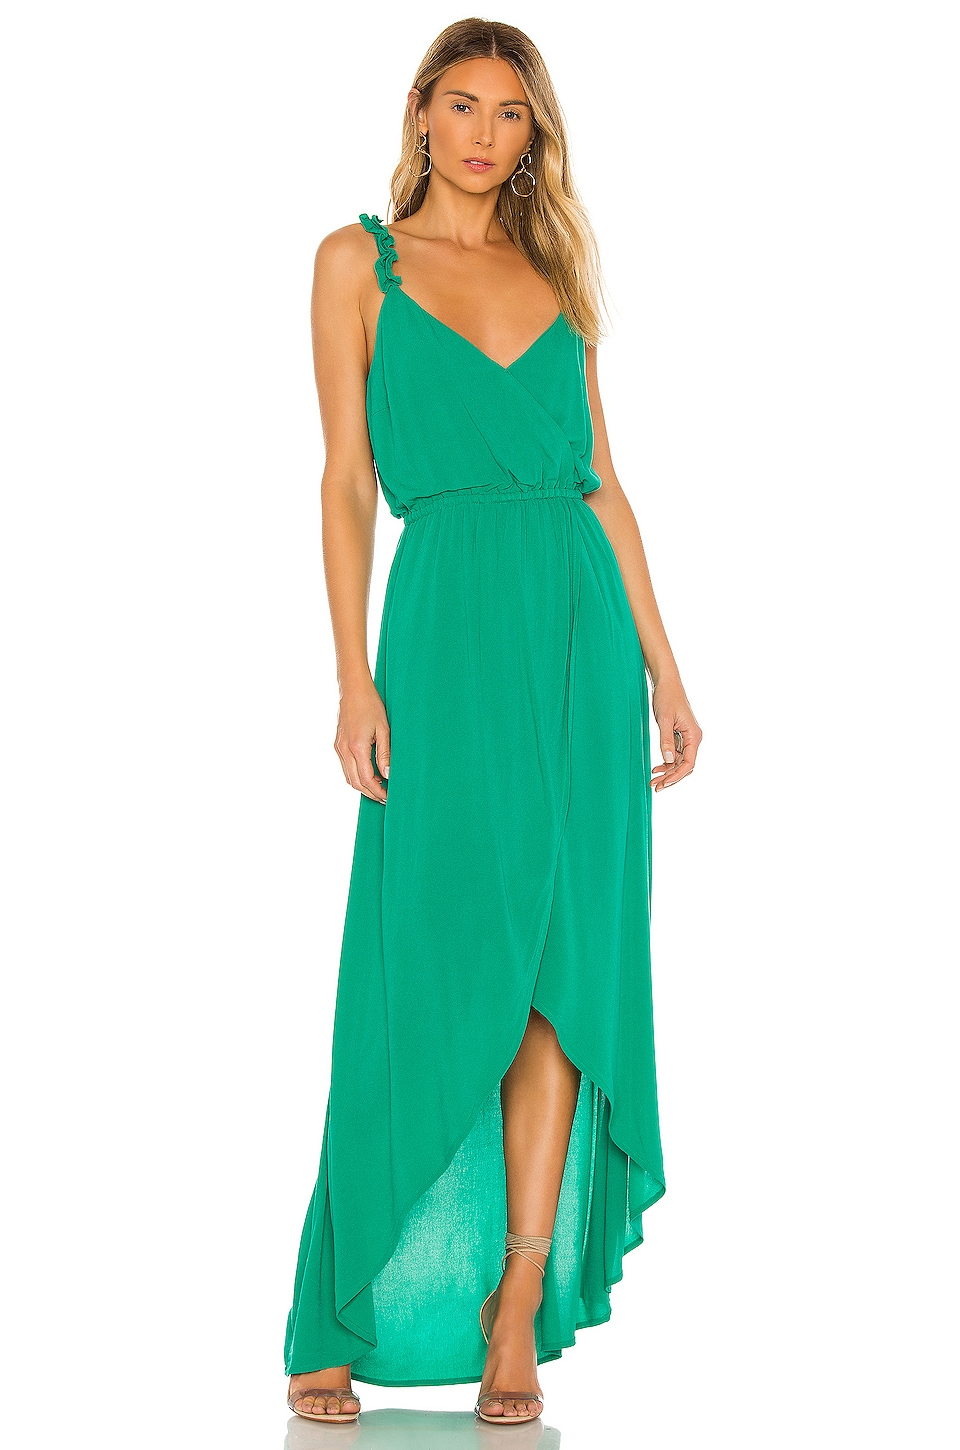 JACK by BB Dakota Ruffle & Cut Midi Dress             BB Dakota                                                                                                       CA$ 124.98 8